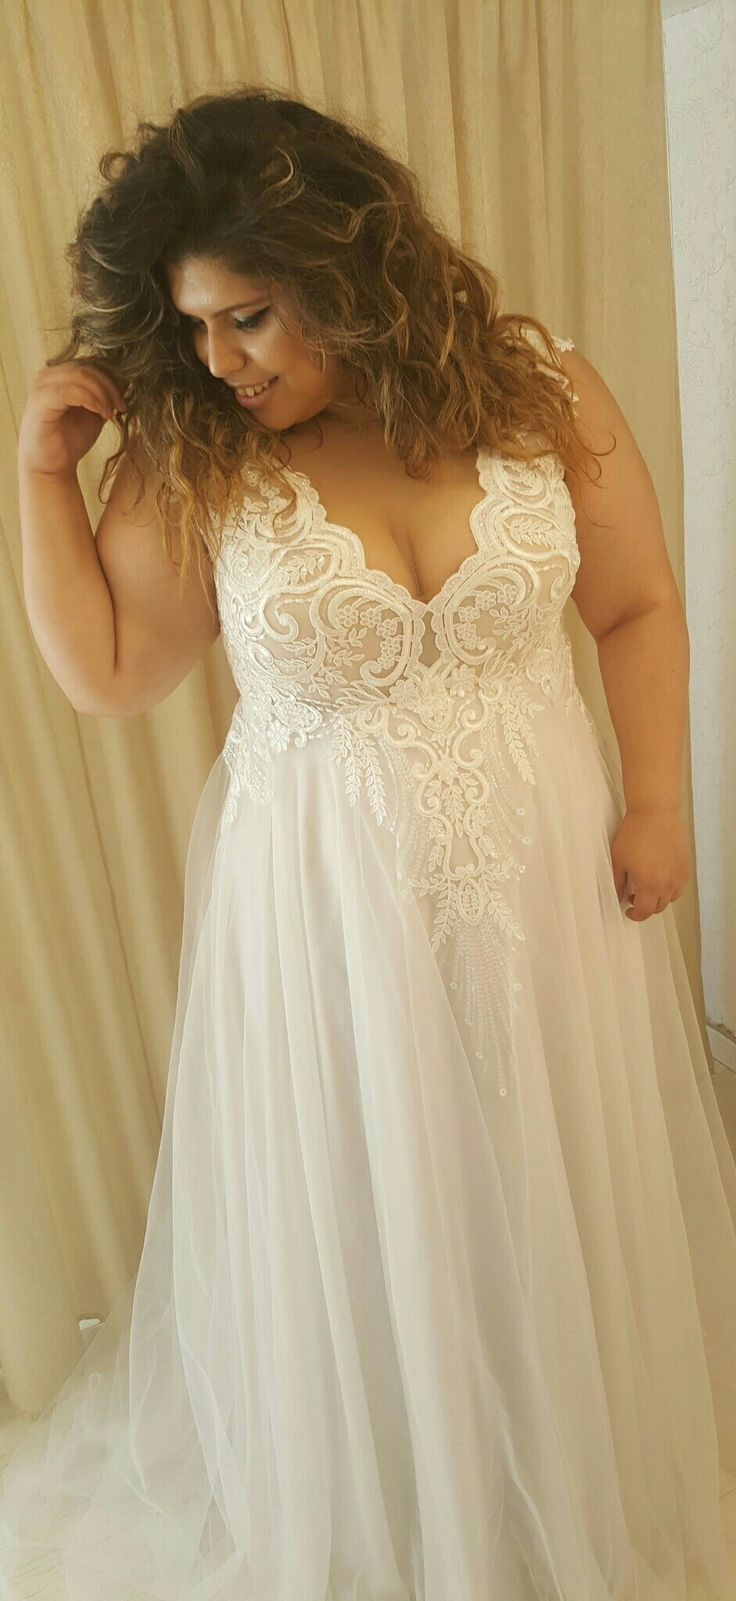 Plus size wedding gown with lace top and tulle skirt. Tracie. Fittings. Studio Levana. 2018